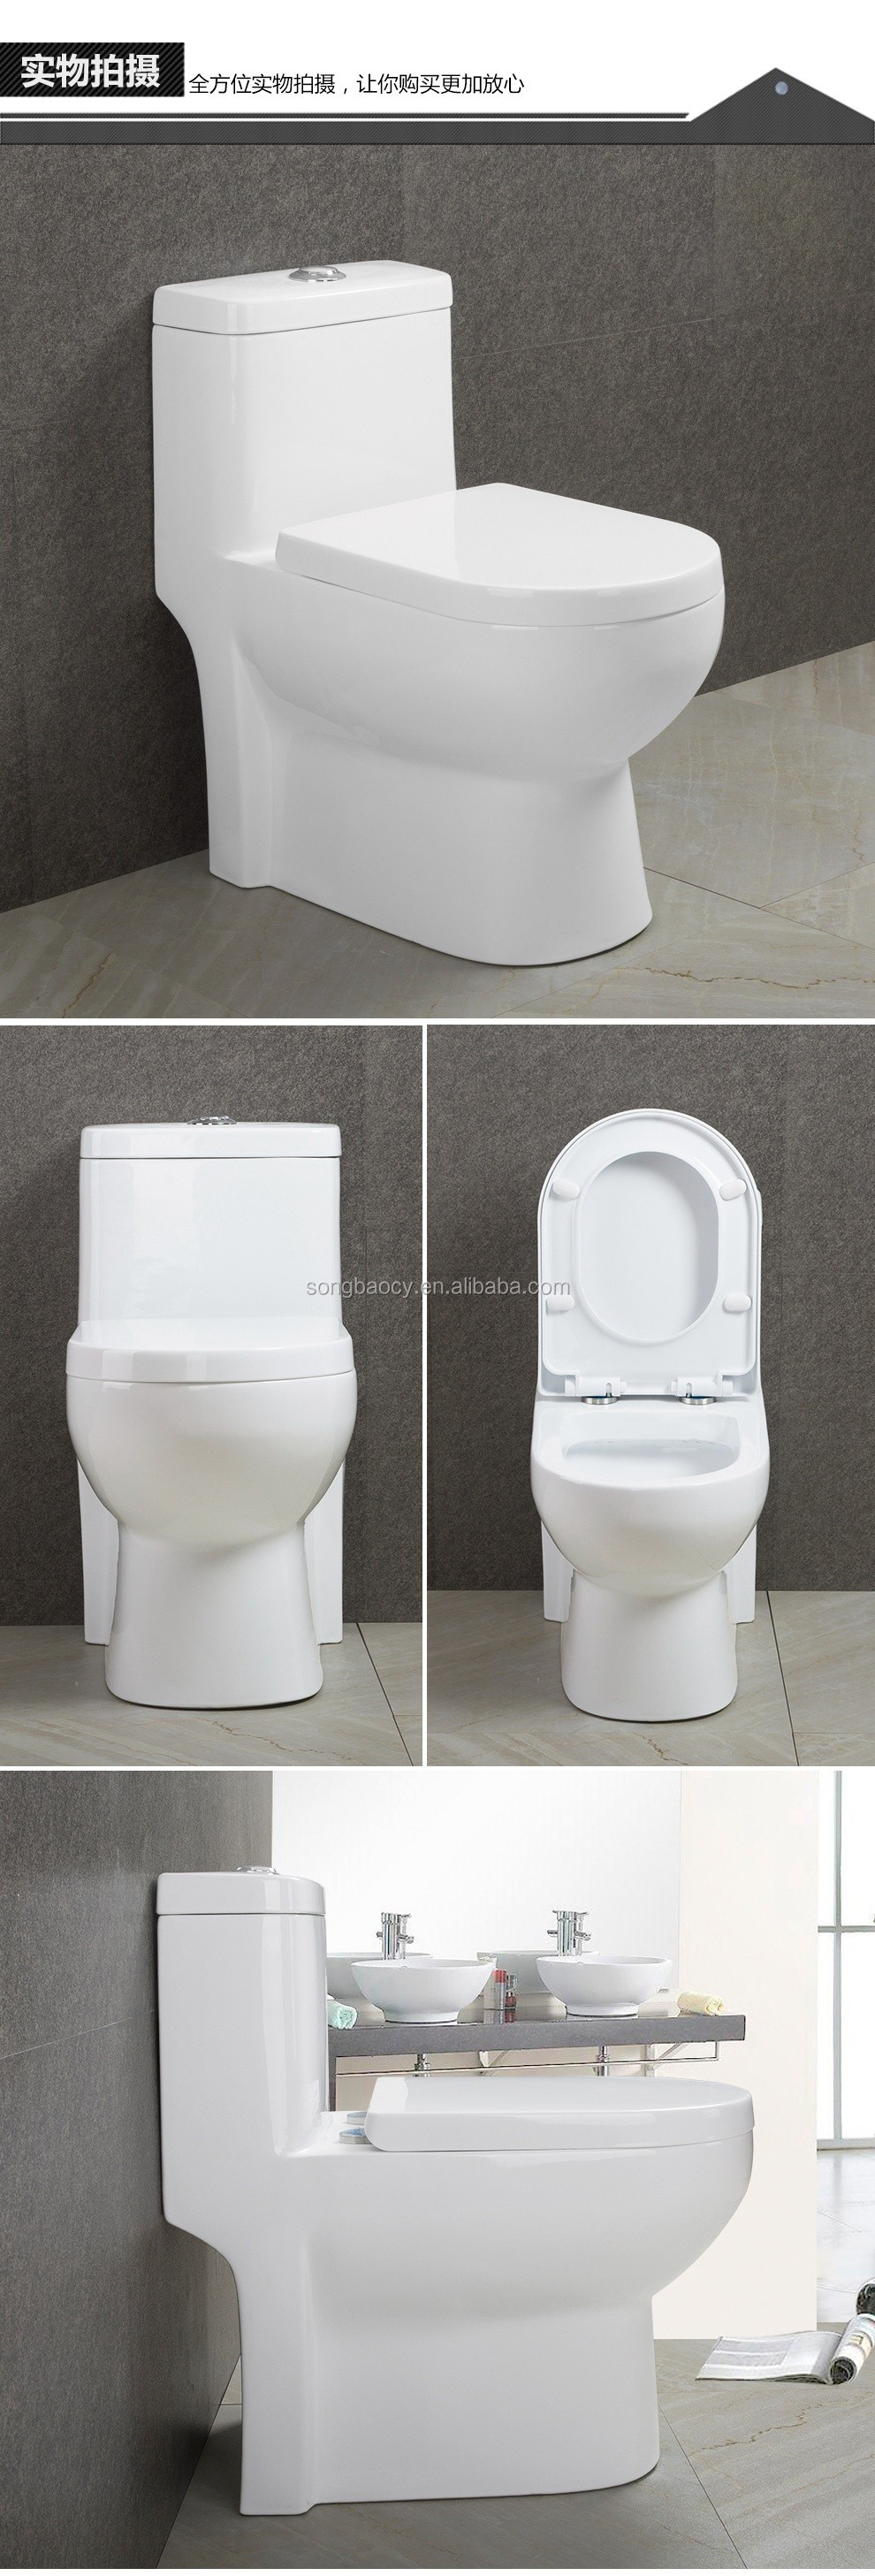 Siphonic Toilet Ceramic Wc China Sanitary Ware